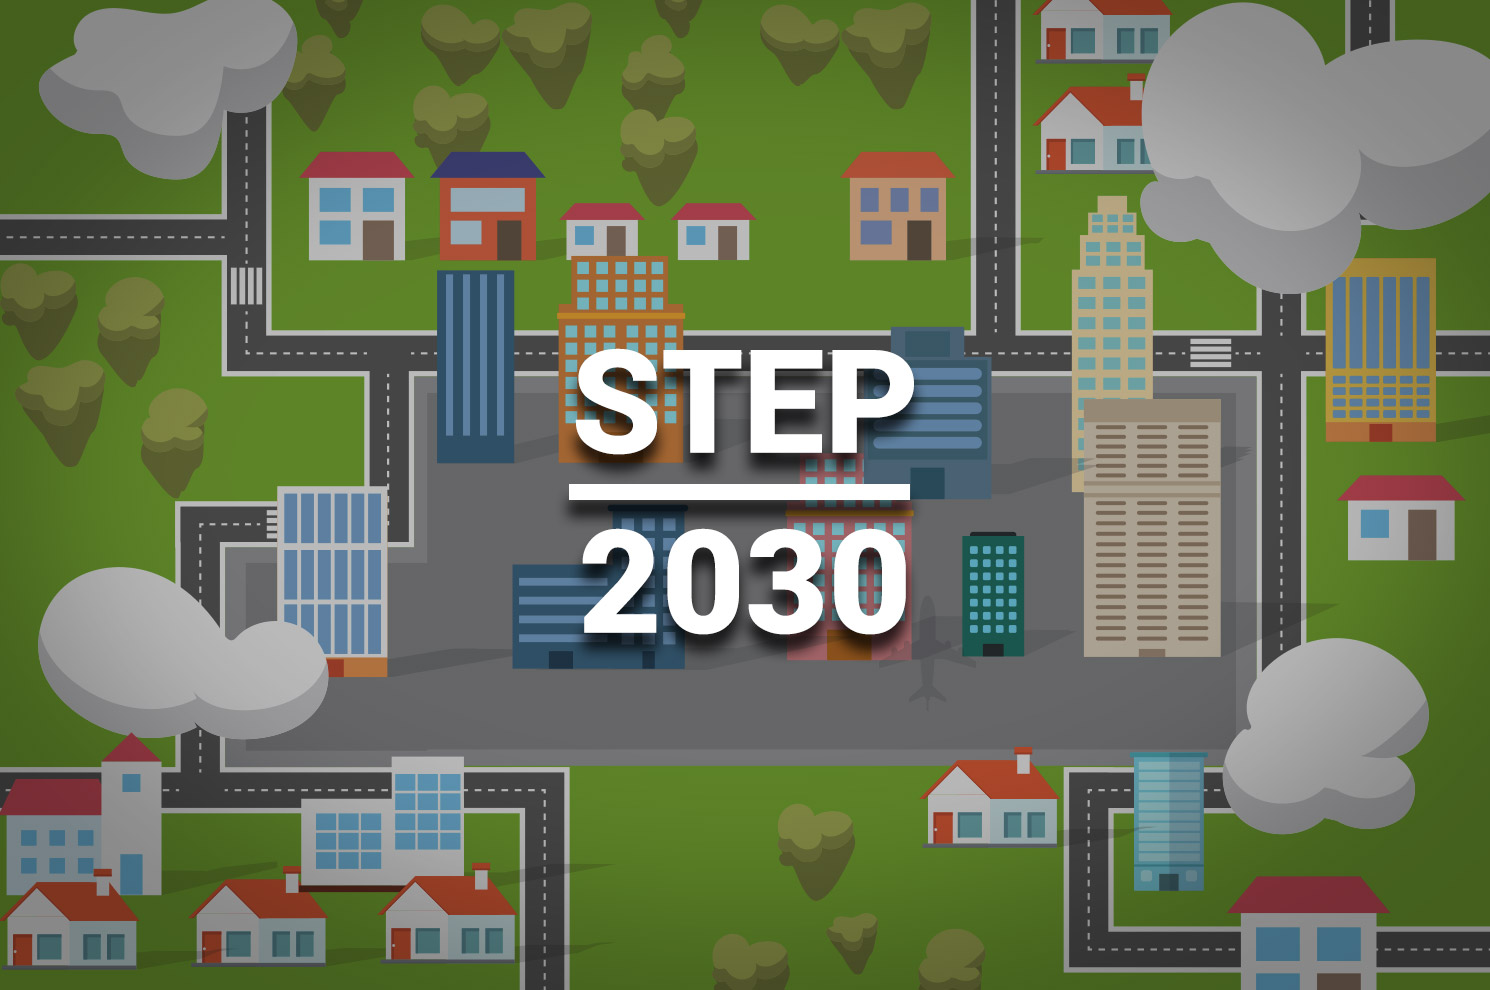 STEP 2030 / Foto: Vector Illustration by Vecteezy!